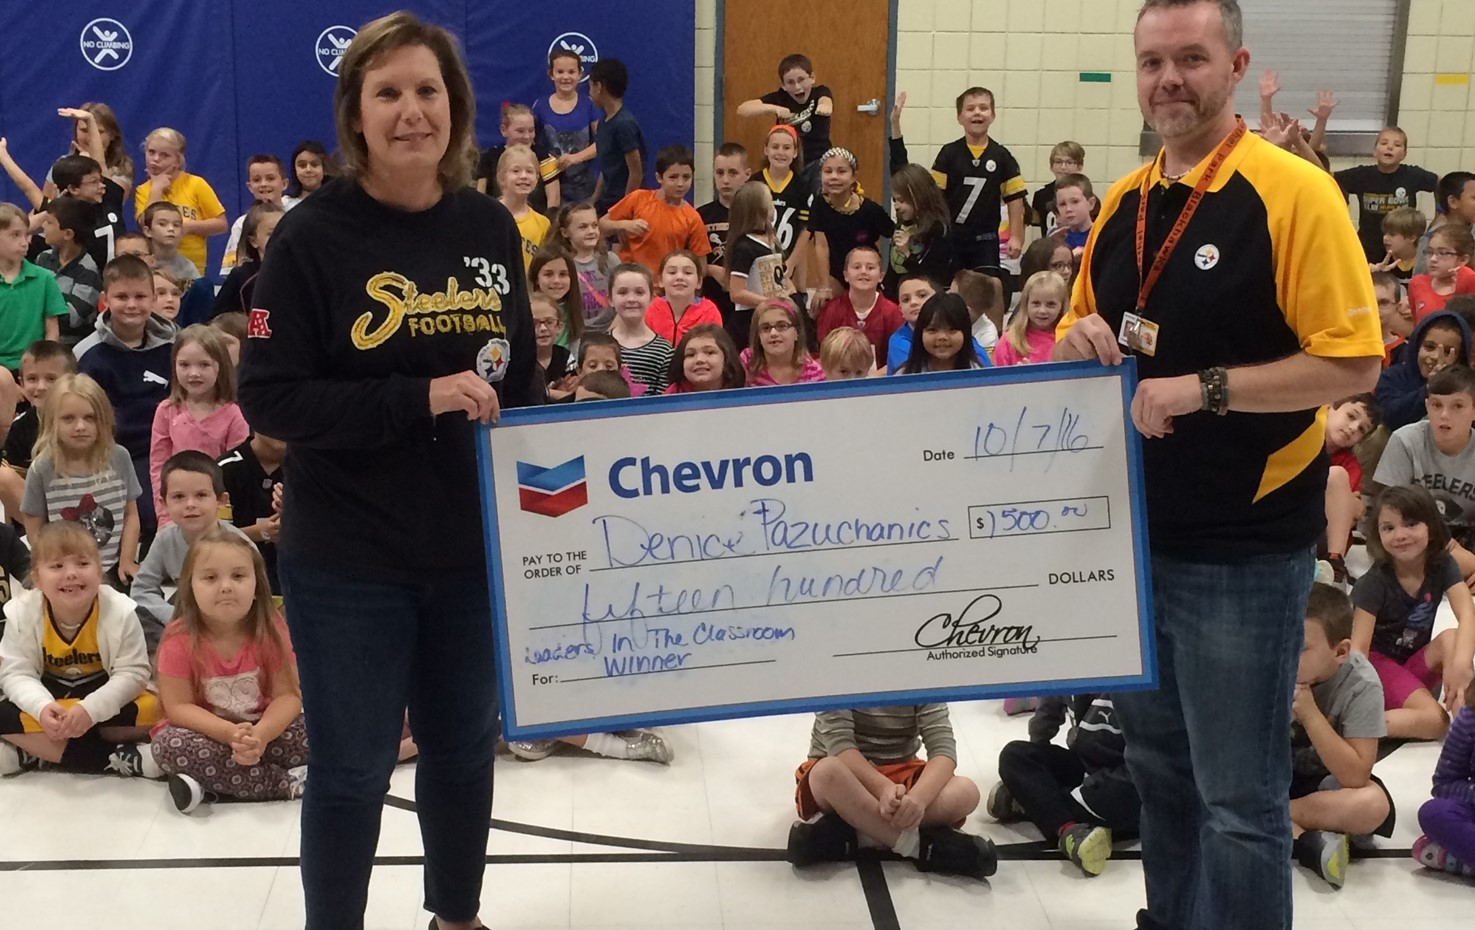 Lincoln Librarian Denice Pazuchanics Named A Leader In The Classroom By Chevron And The Steelers